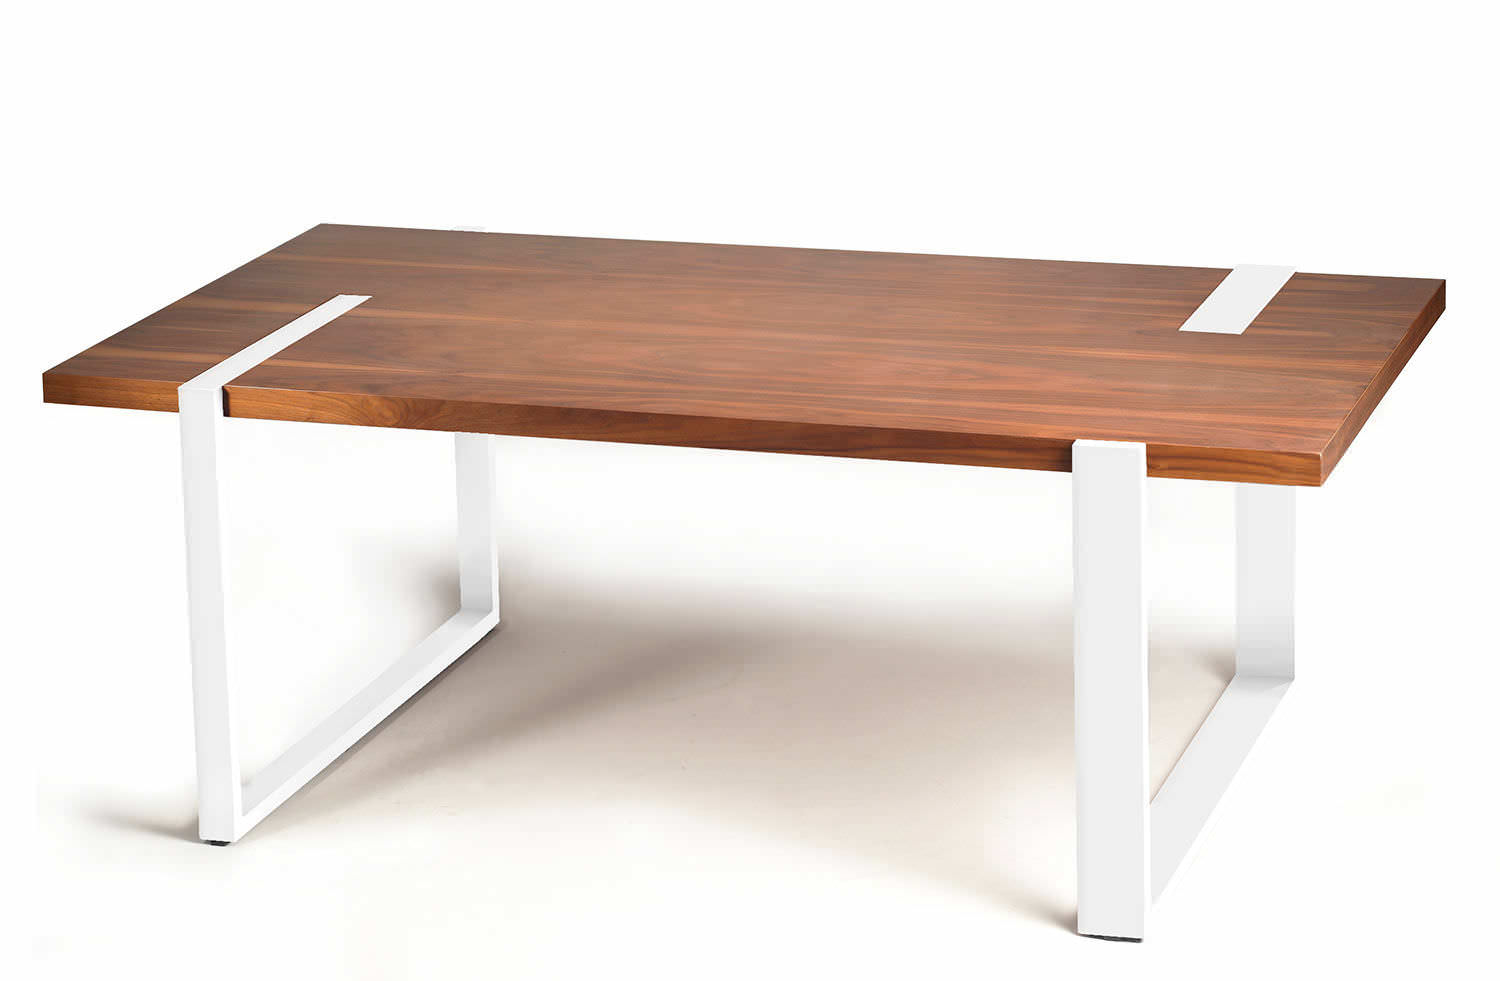 Contemporary dining table walnut plywood lacquered MDF MAX